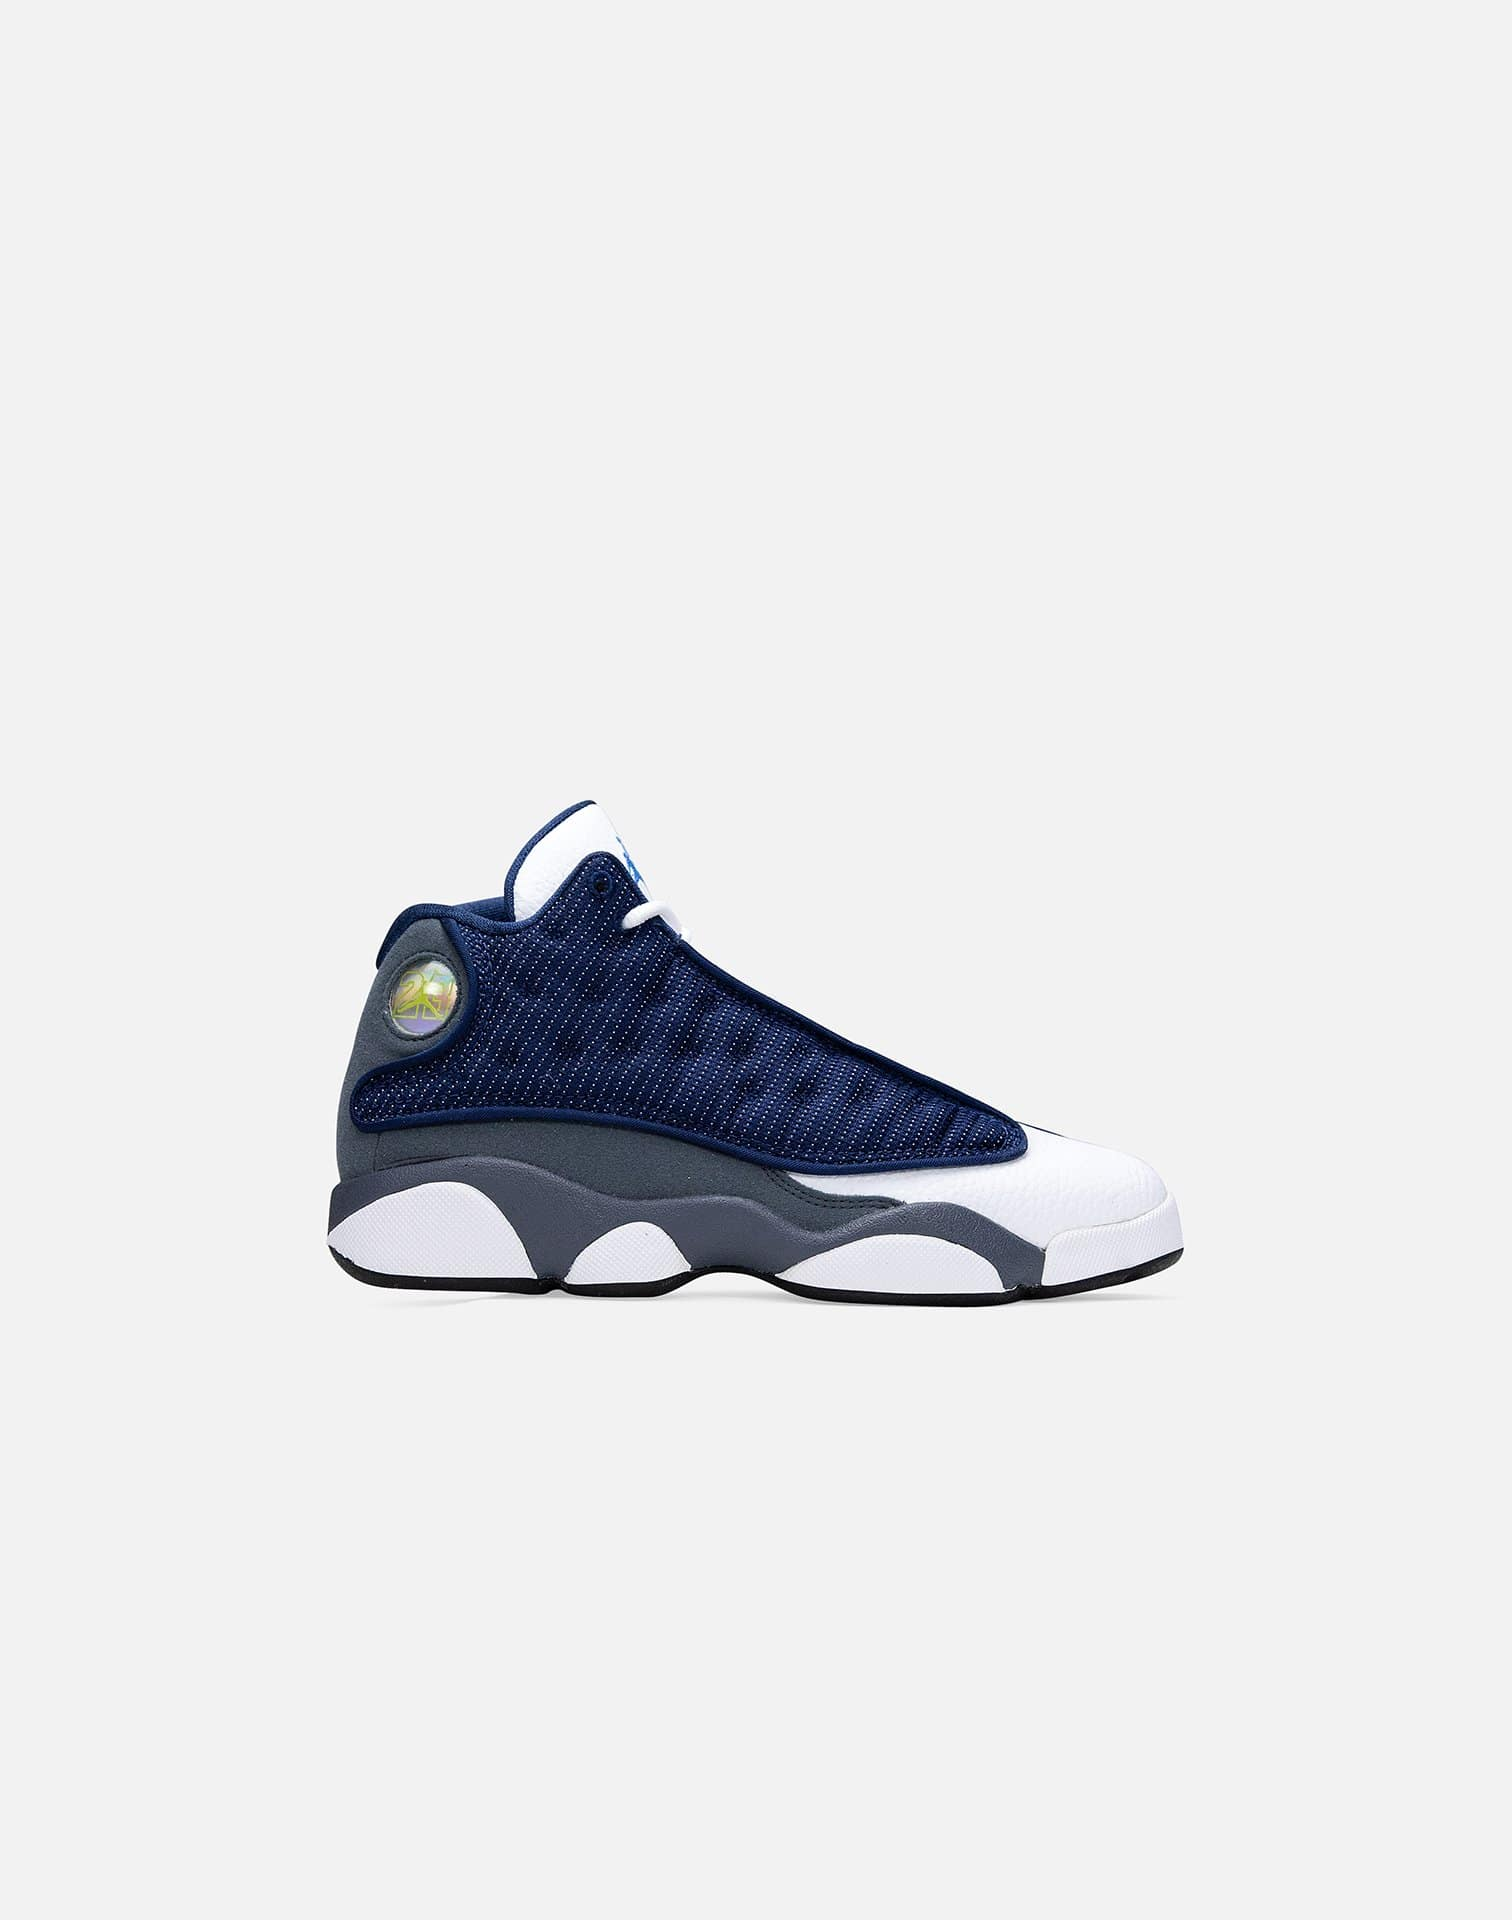 Jordan AIR JORDAN RETRO 13 'FLINT' PRE-SCHOOL